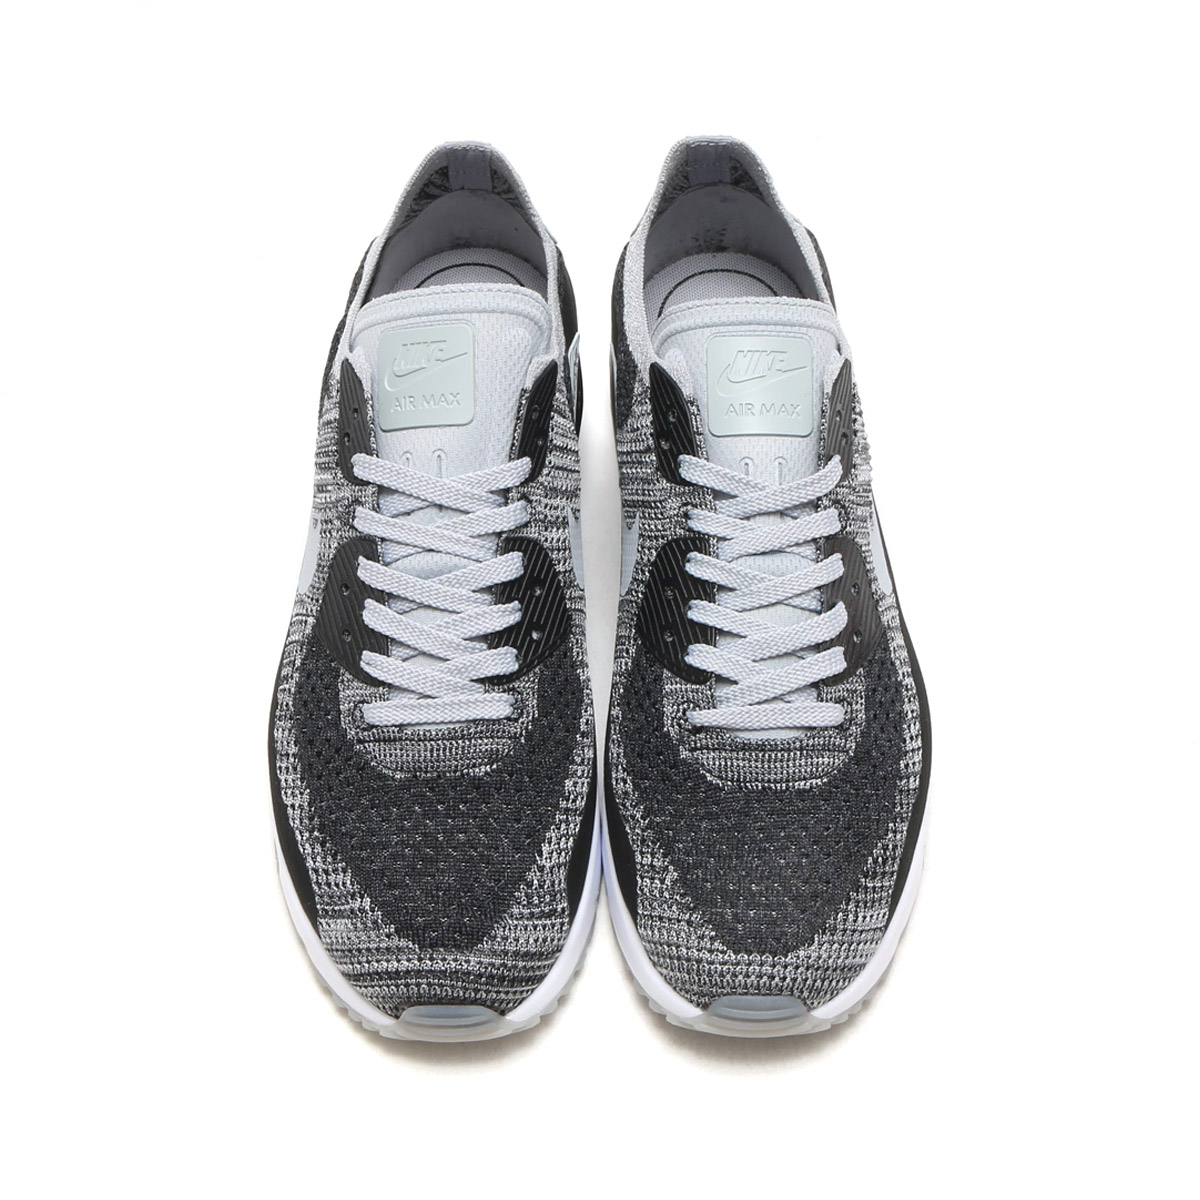 official photos 98439 55964 NIKE AIR MAX 90 ULTRA 2.0 FLYKNIT WOLF GREY-PURE PLATINUM-DK GREY-WHITE  (ナイキ エア ...